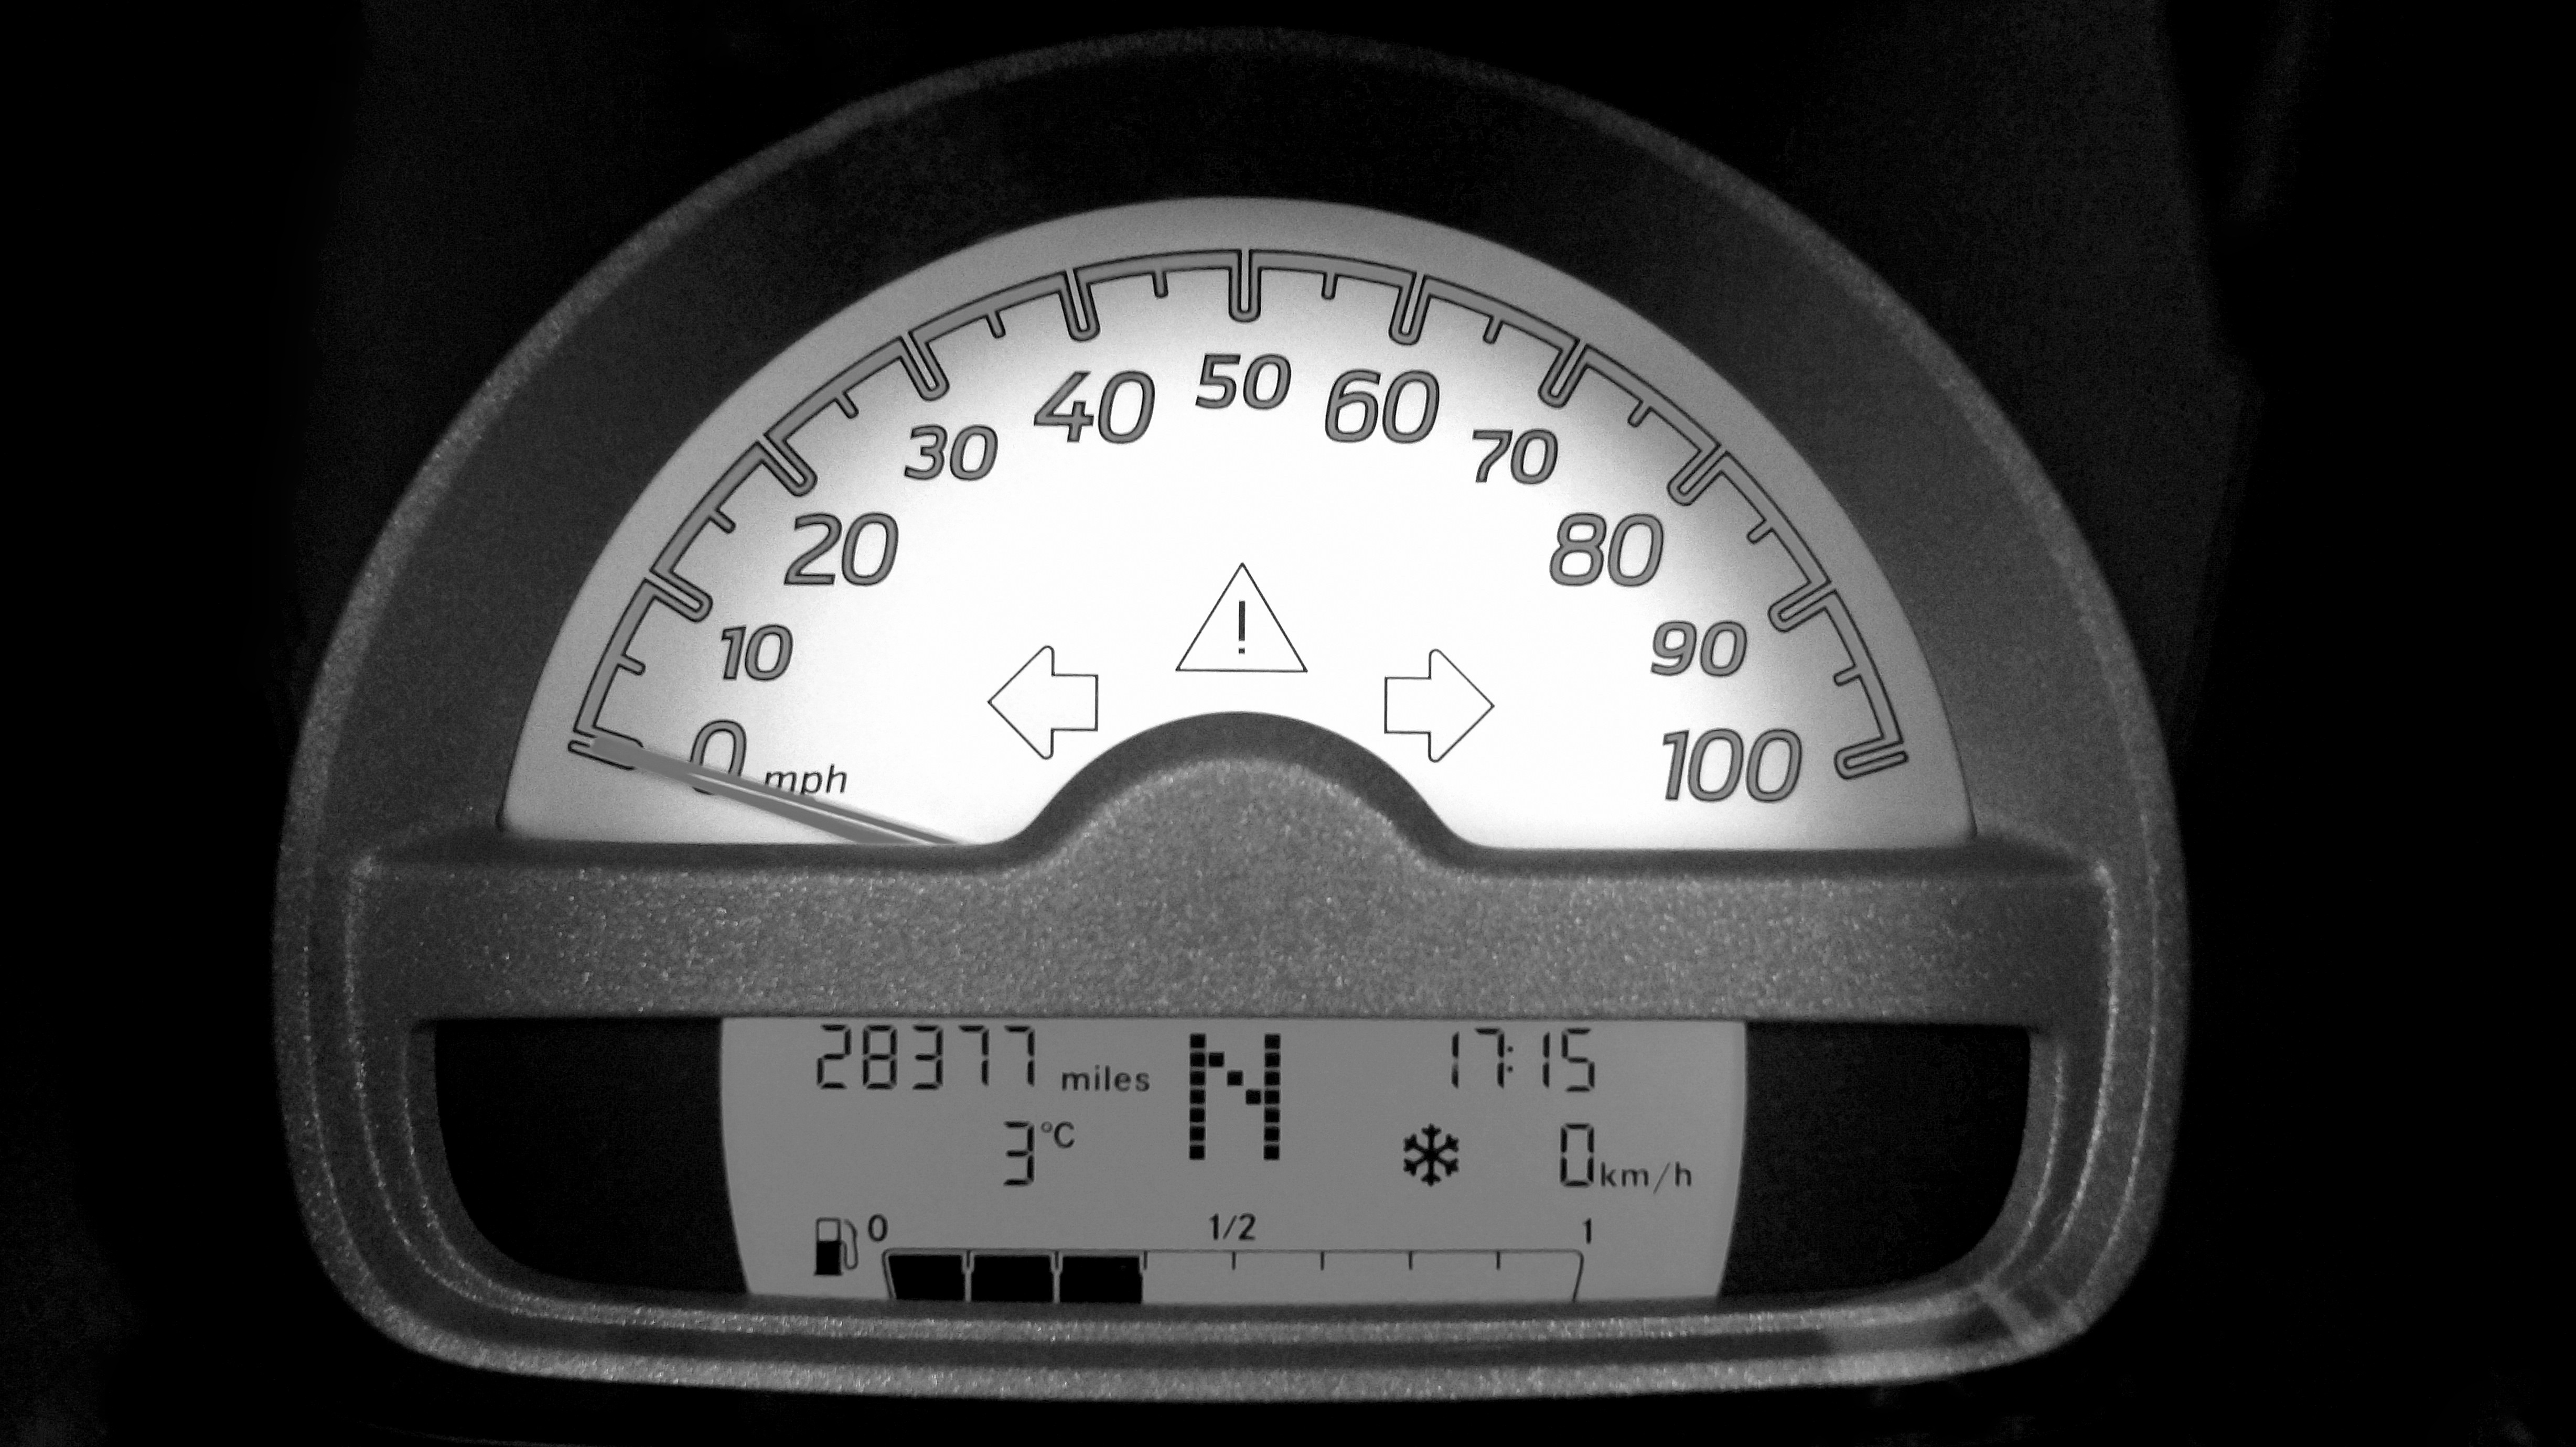 mileage rates for landlords; landlords; mileage rate; individual running property business; property business